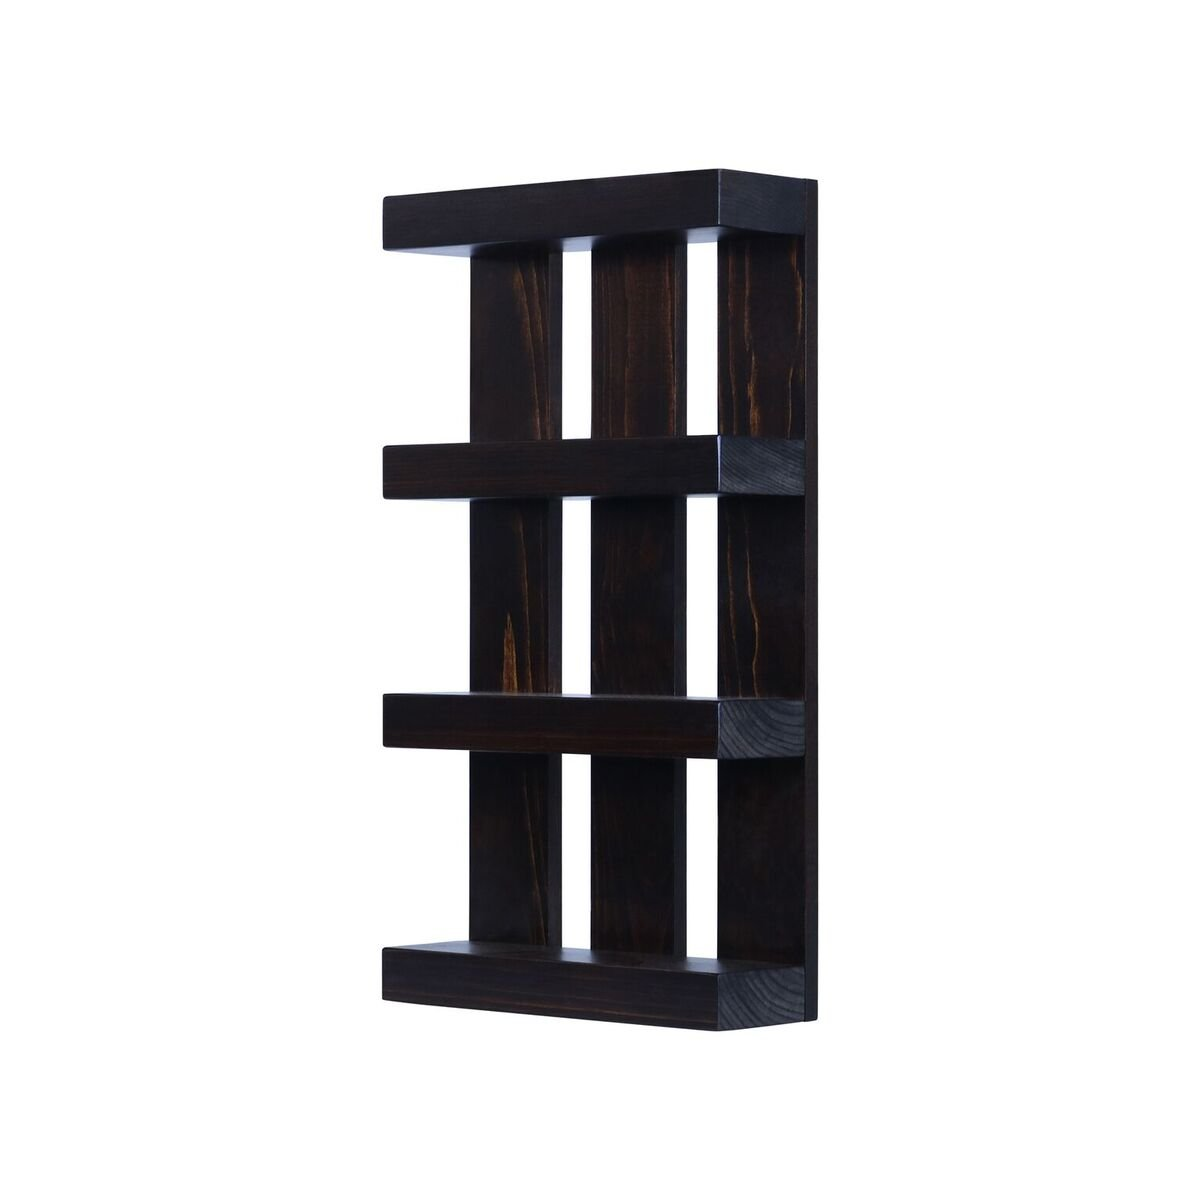 Solid Wood 4 tier Wall Mount Shelves Home Decor Decoration for Bathroom, Living Room, Kitchen and Entryway Made in the USA by Rooms Organized (Expresso, 22'' h x 15'' w x 4.25'' deep) by Rooms Organized (Image #2)